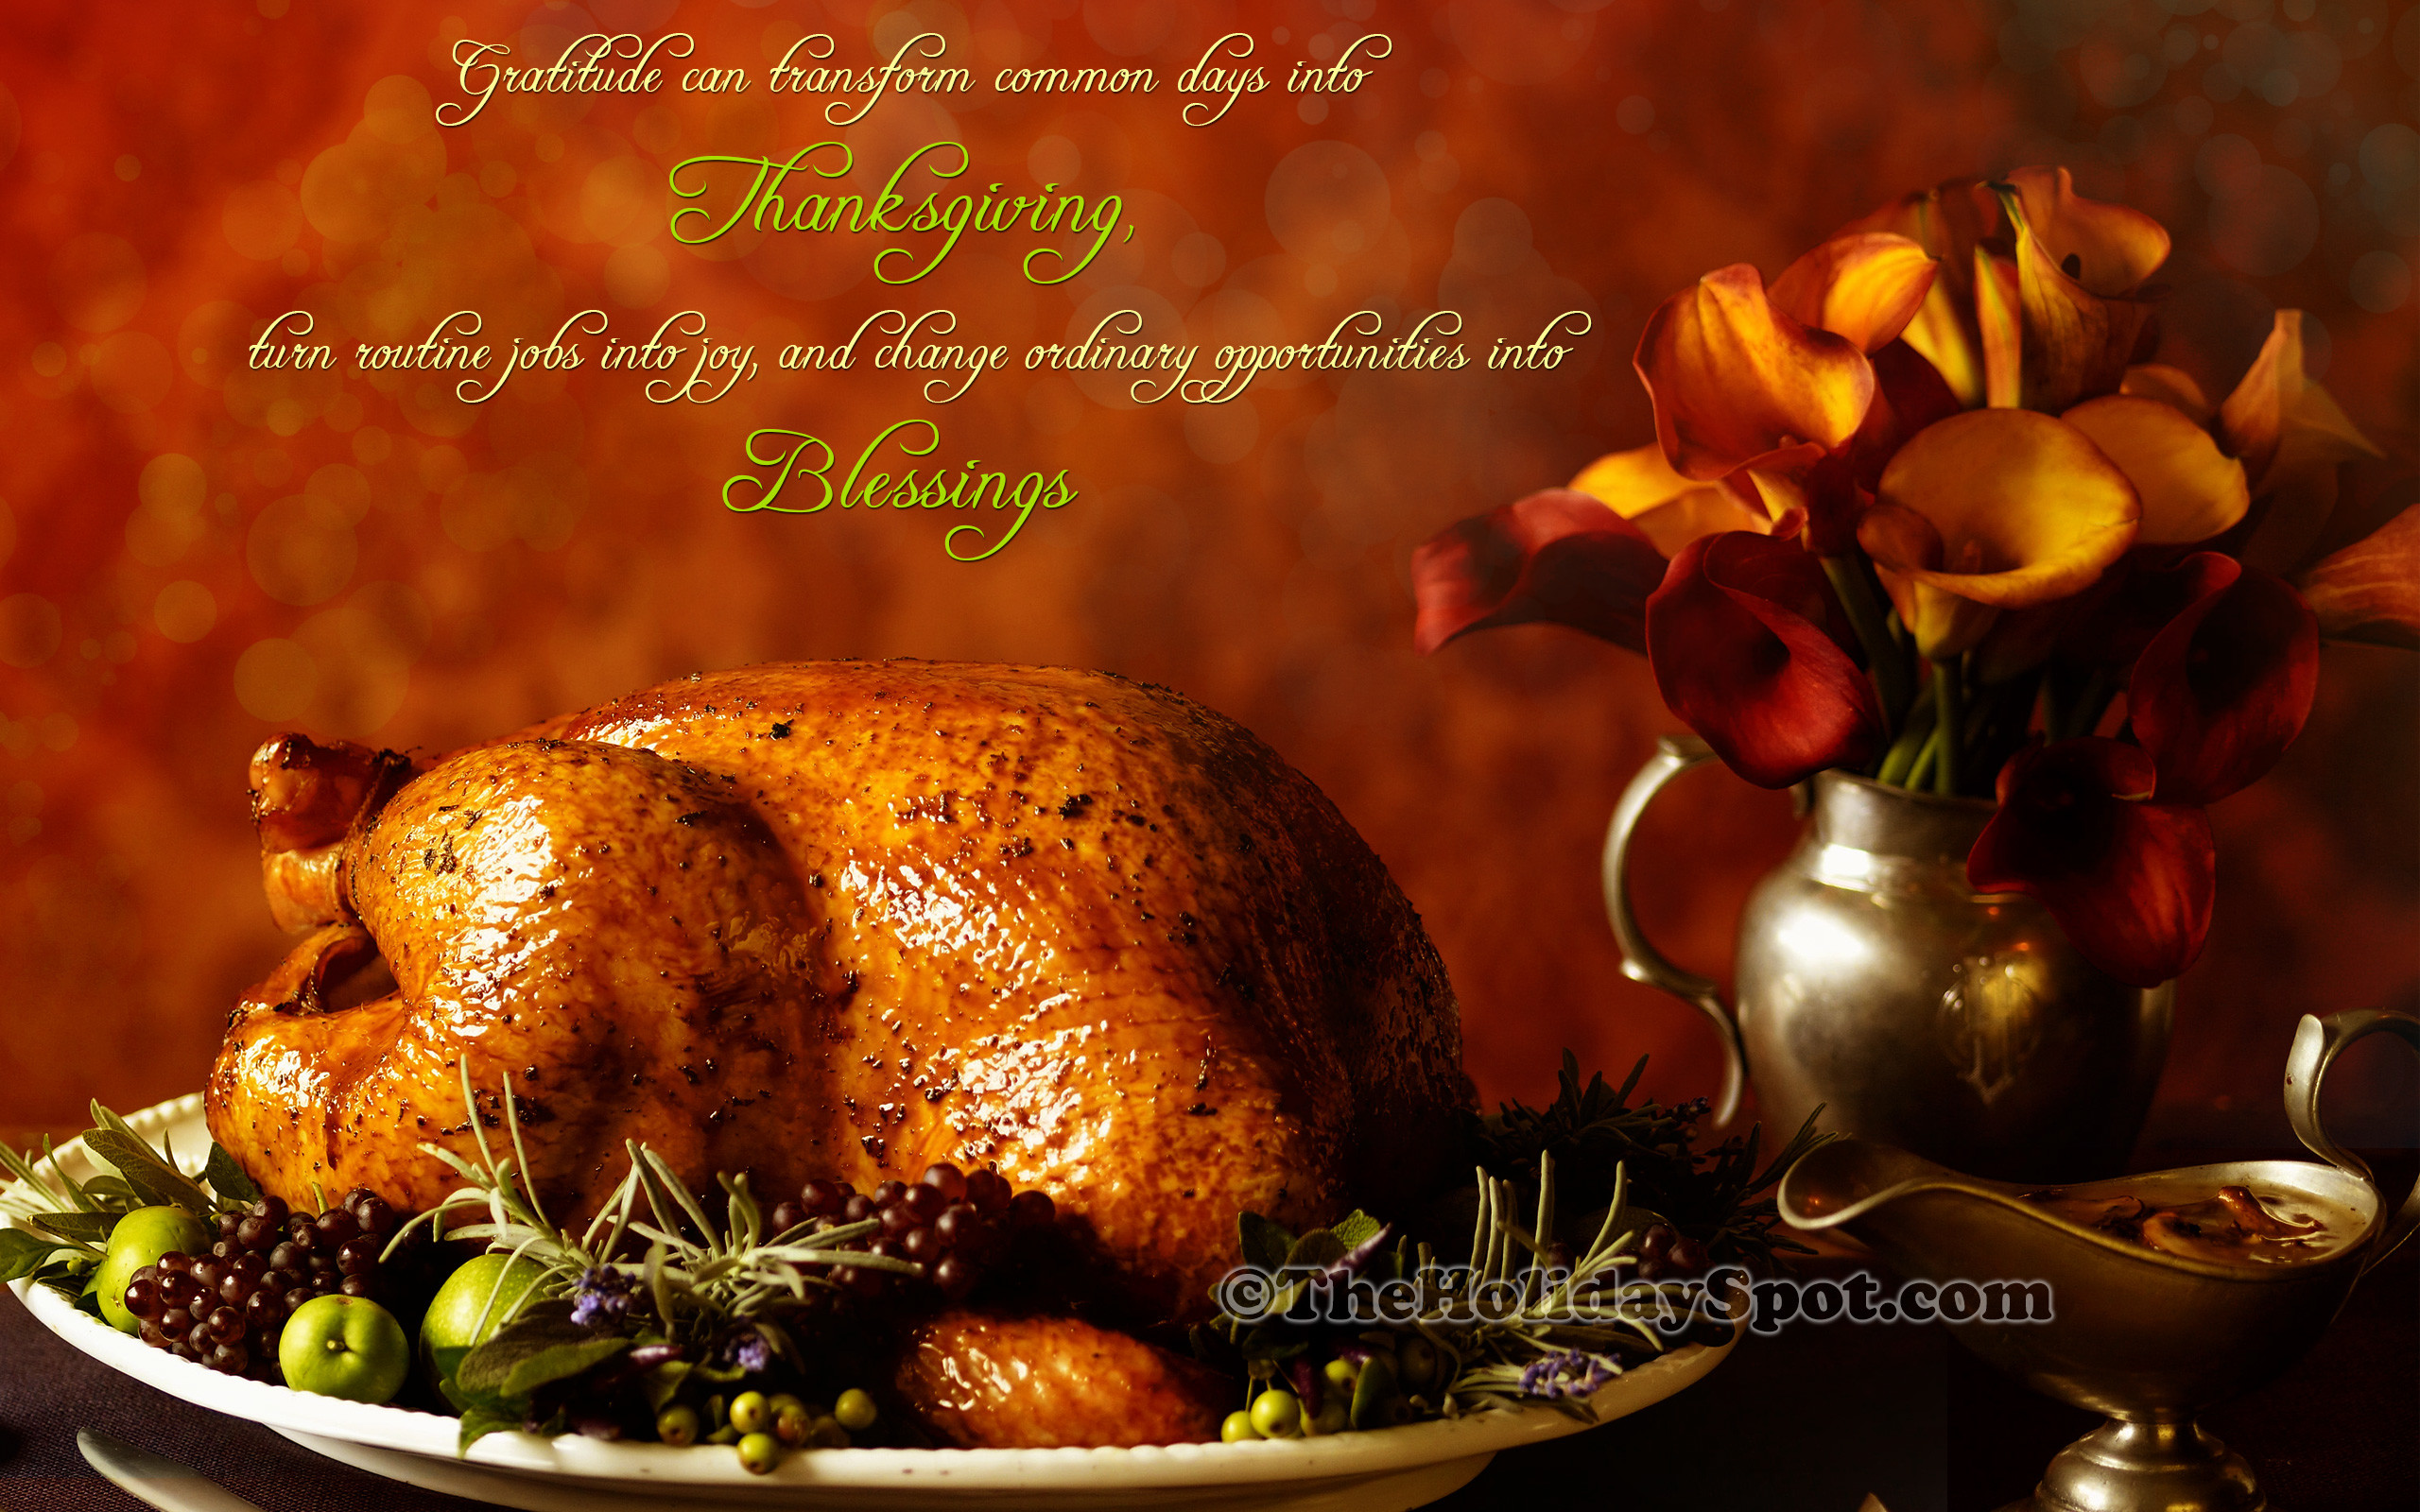 2560x1600 Thanksgiving HD wallpaper - Lady giving thanks to Lord